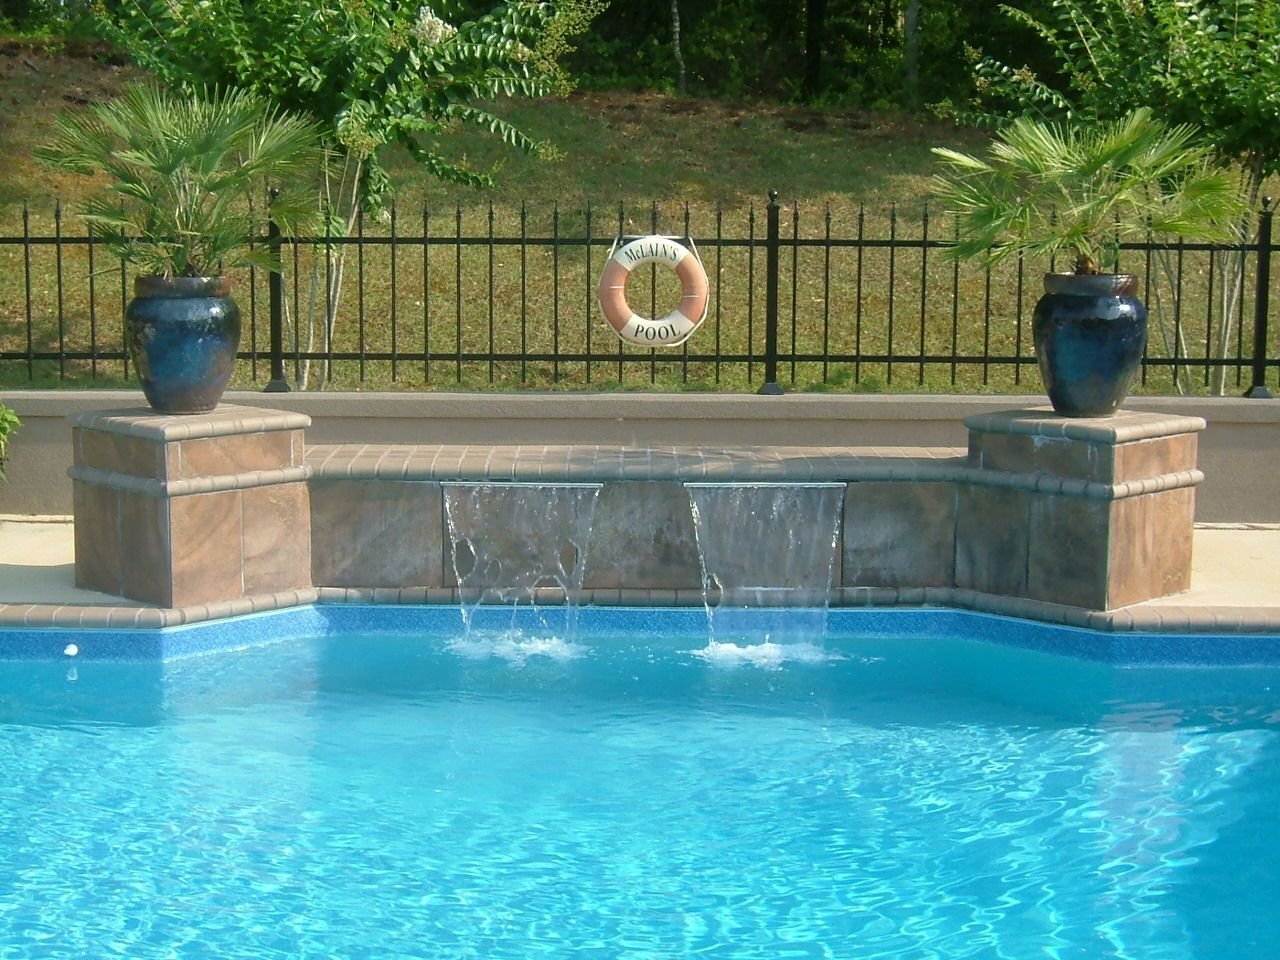 Waterfall On Pools Google Search Swimming Pool Waterfall Swimming Pools Backyard Inground Inground Pool Designs